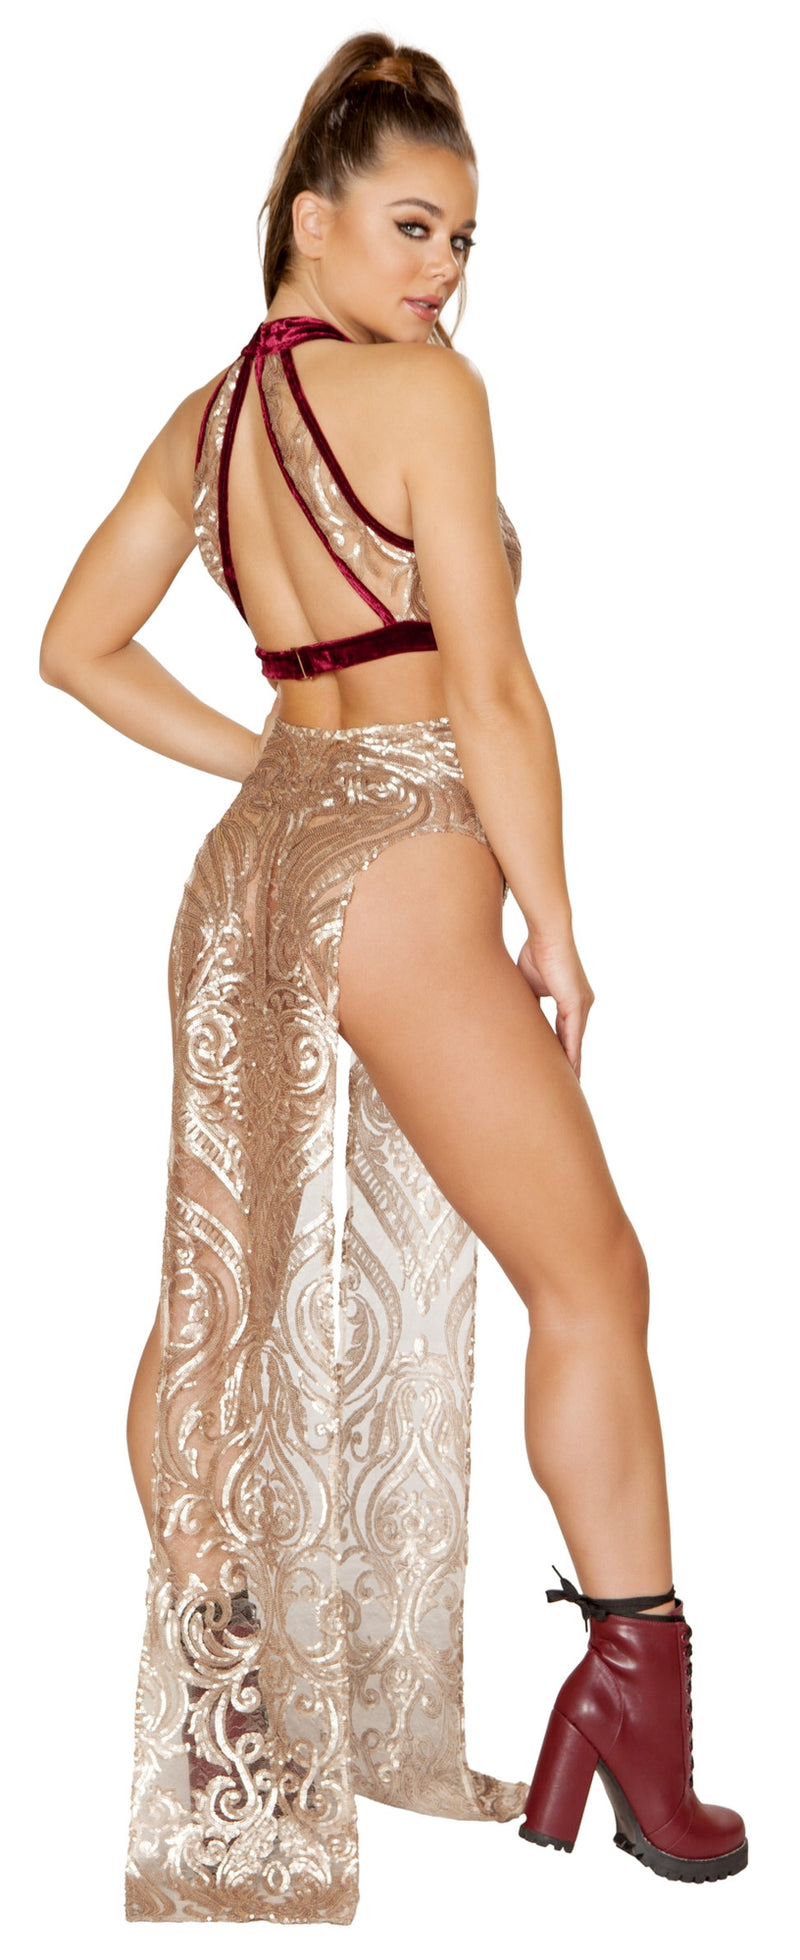 RM-3597 High open slits sequin skirt back